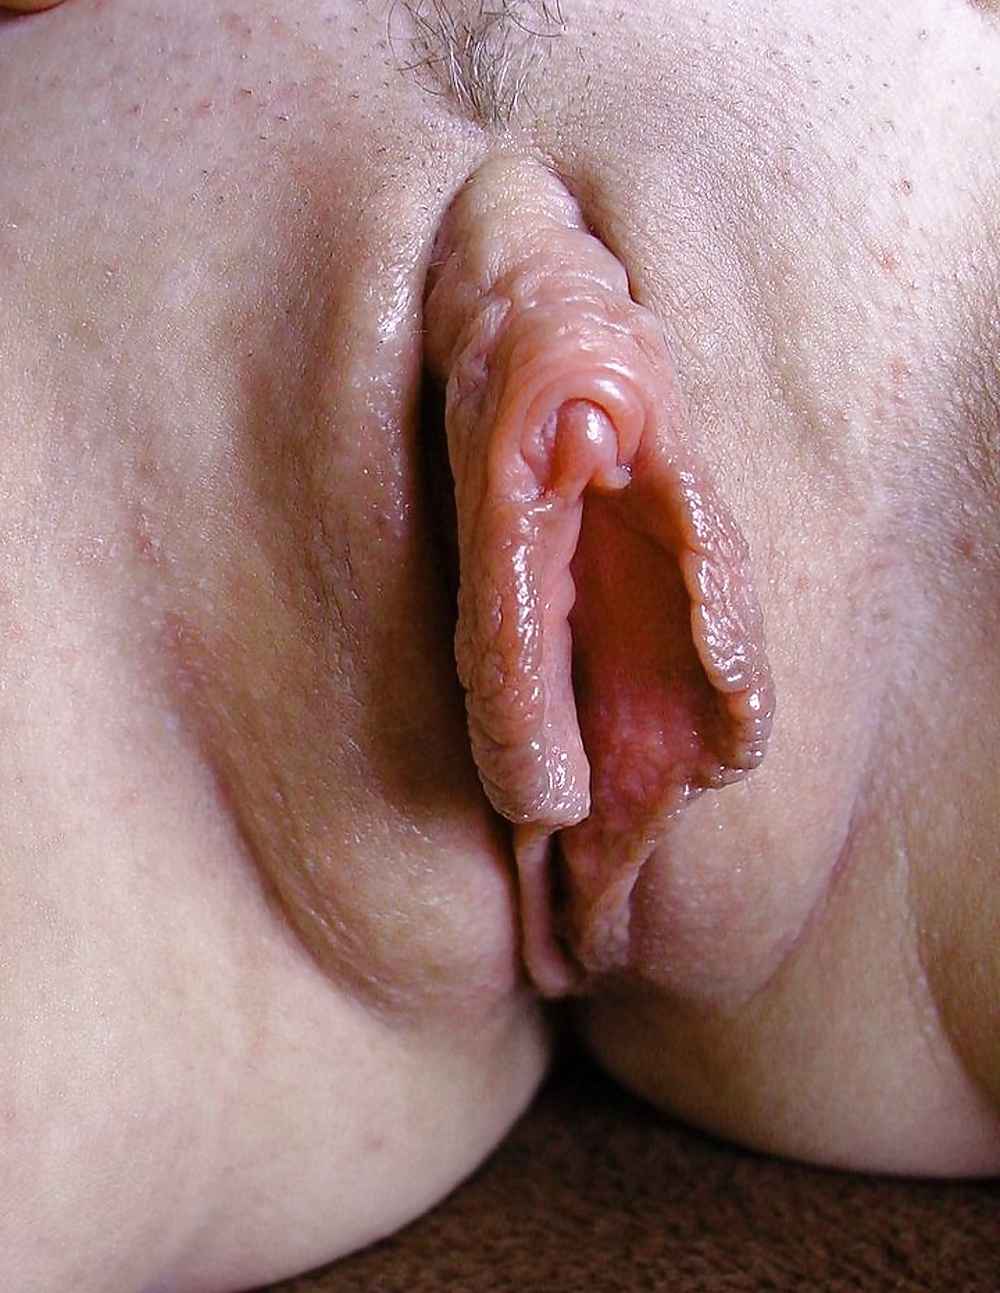 foods-pictures-clit-huge-young